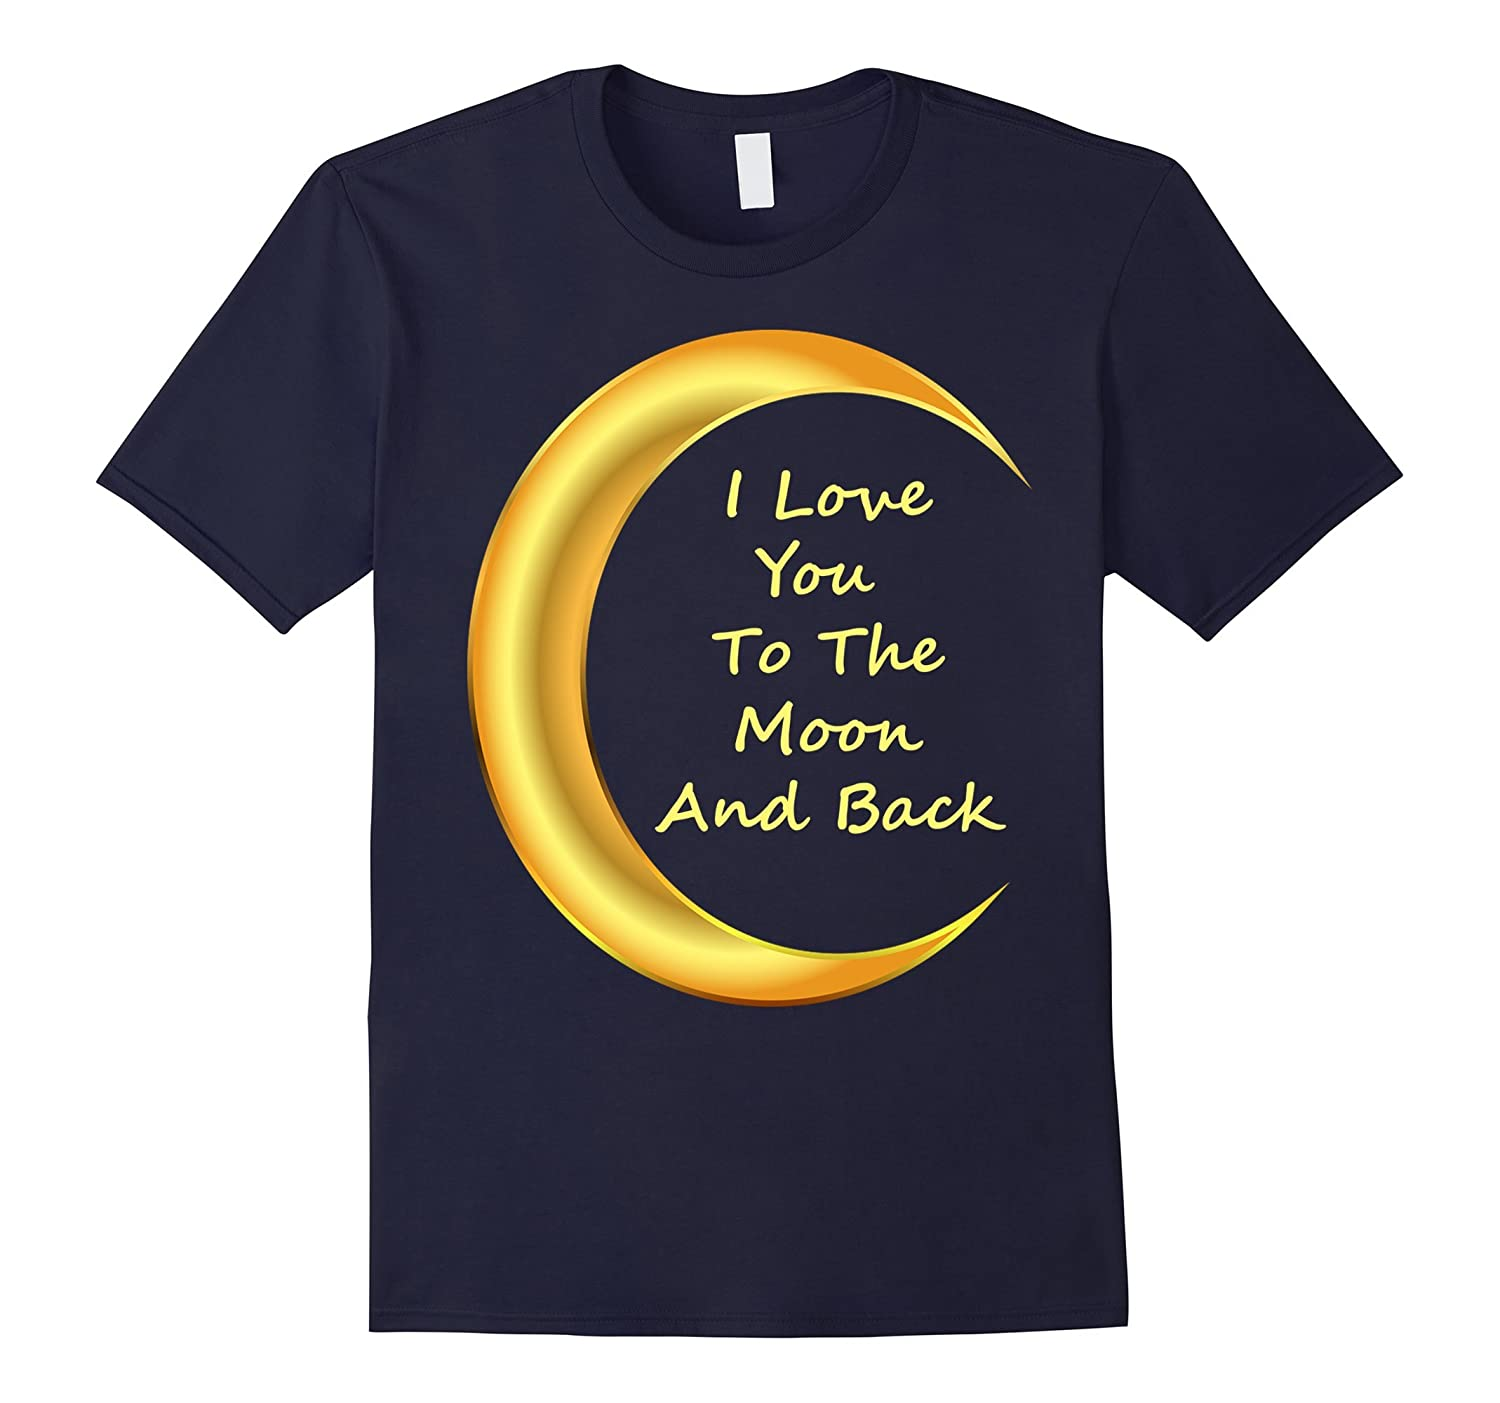 i love you to the moon and back t shirt goatstee. Black Bedroom Furniture Sets. Home Design Ideas